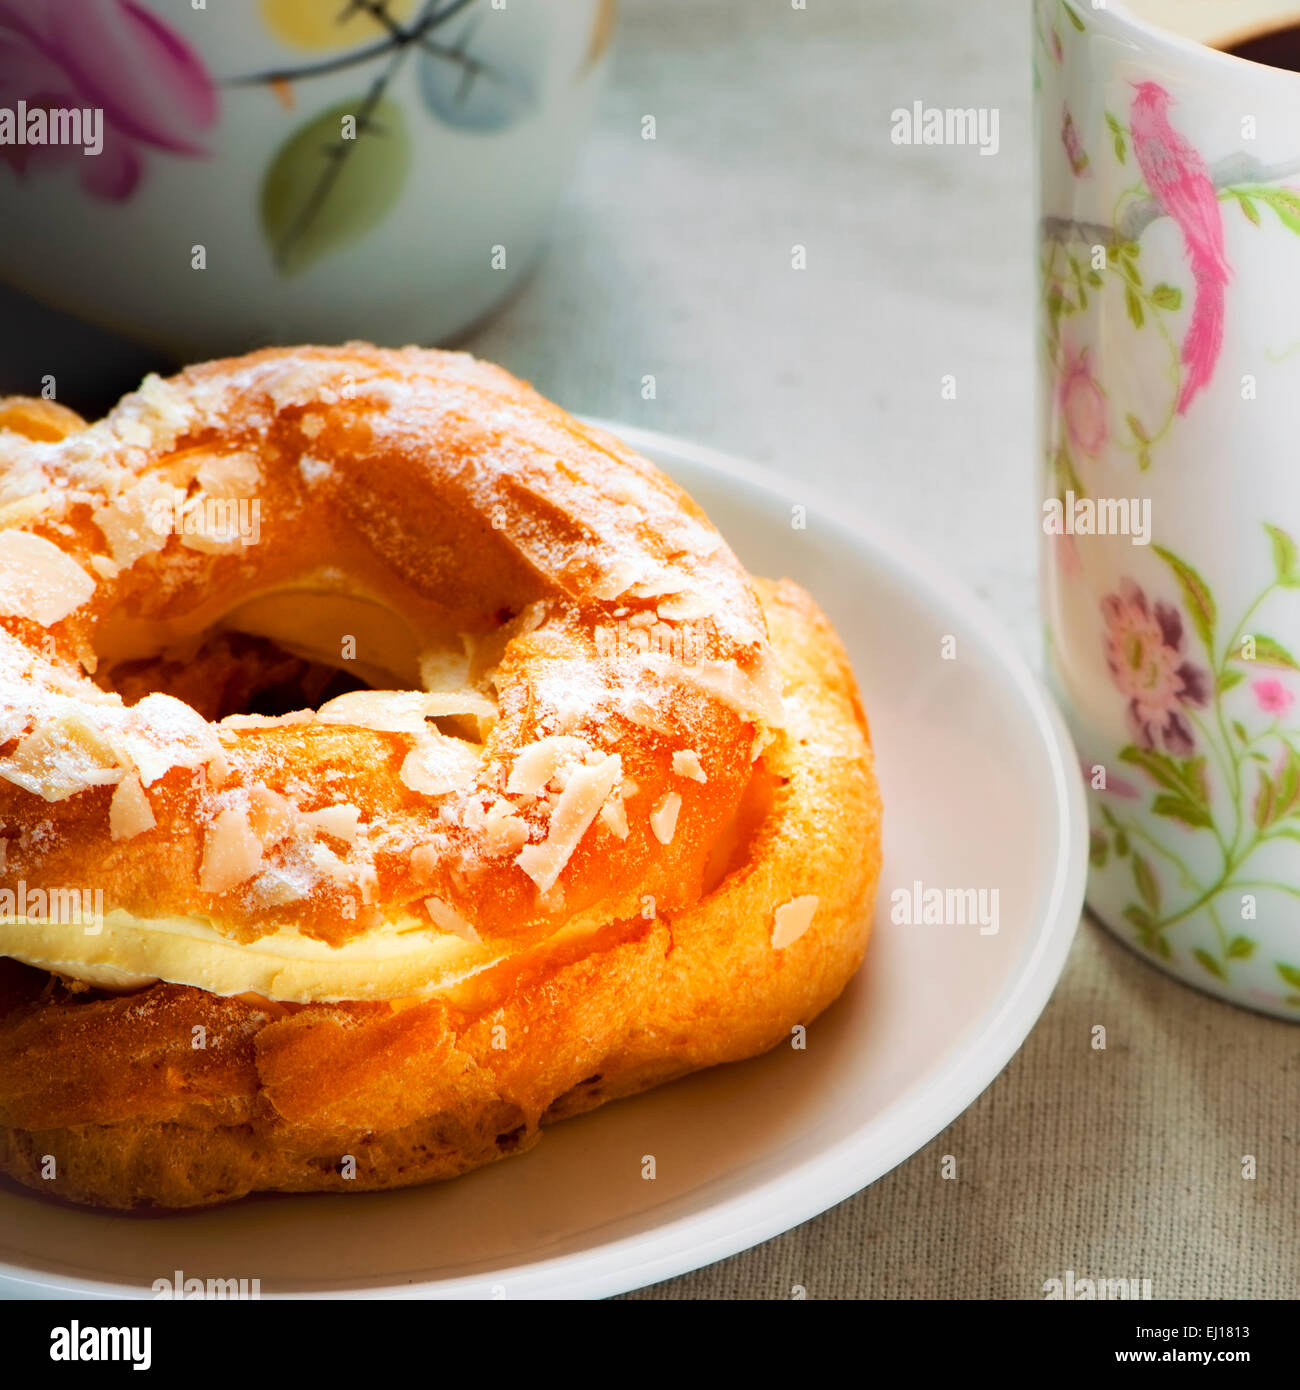 Paris Brest Pastry and coffee - Stock Image